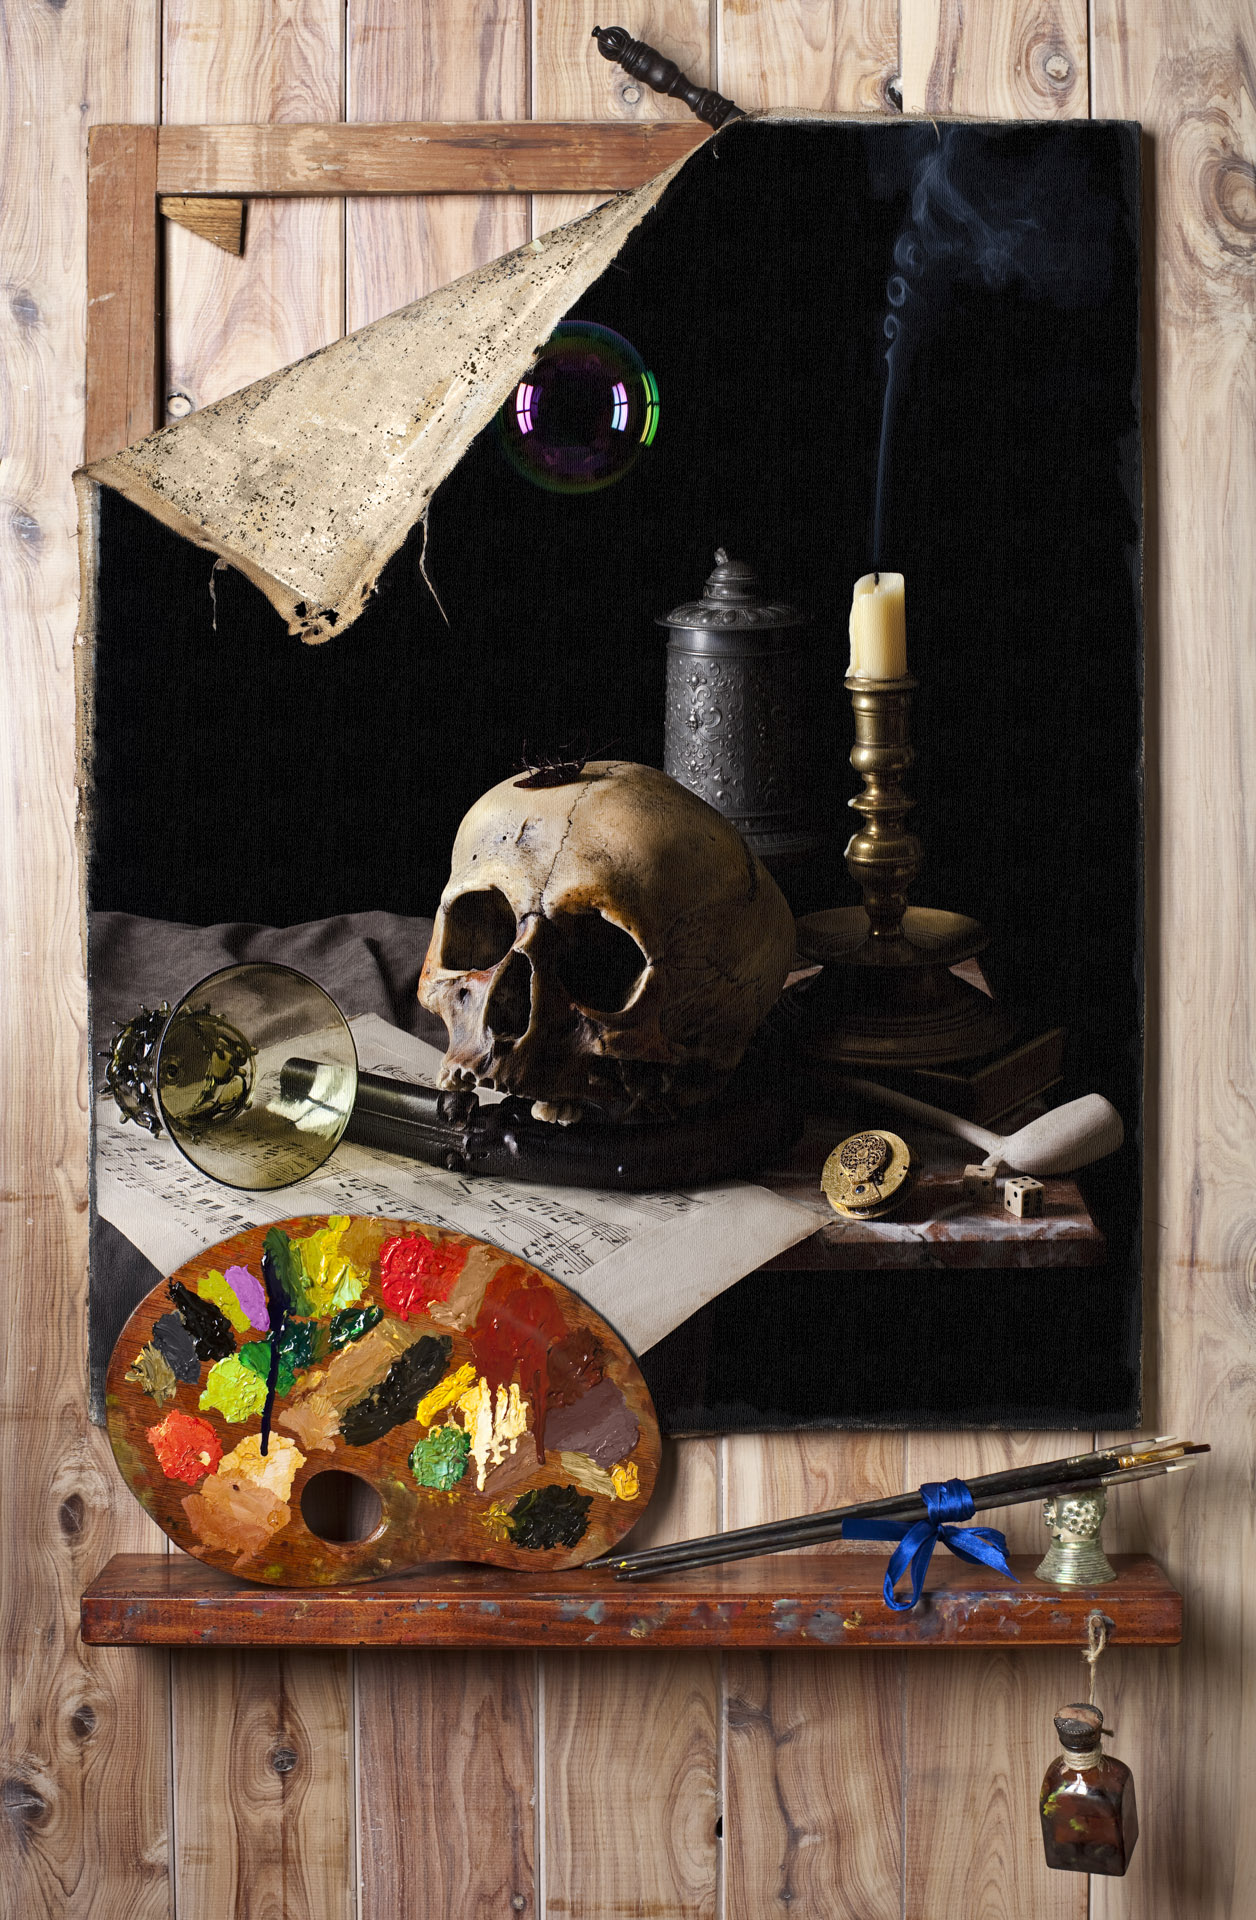 Vanitas in the style of Cornelius Gijsbrechts